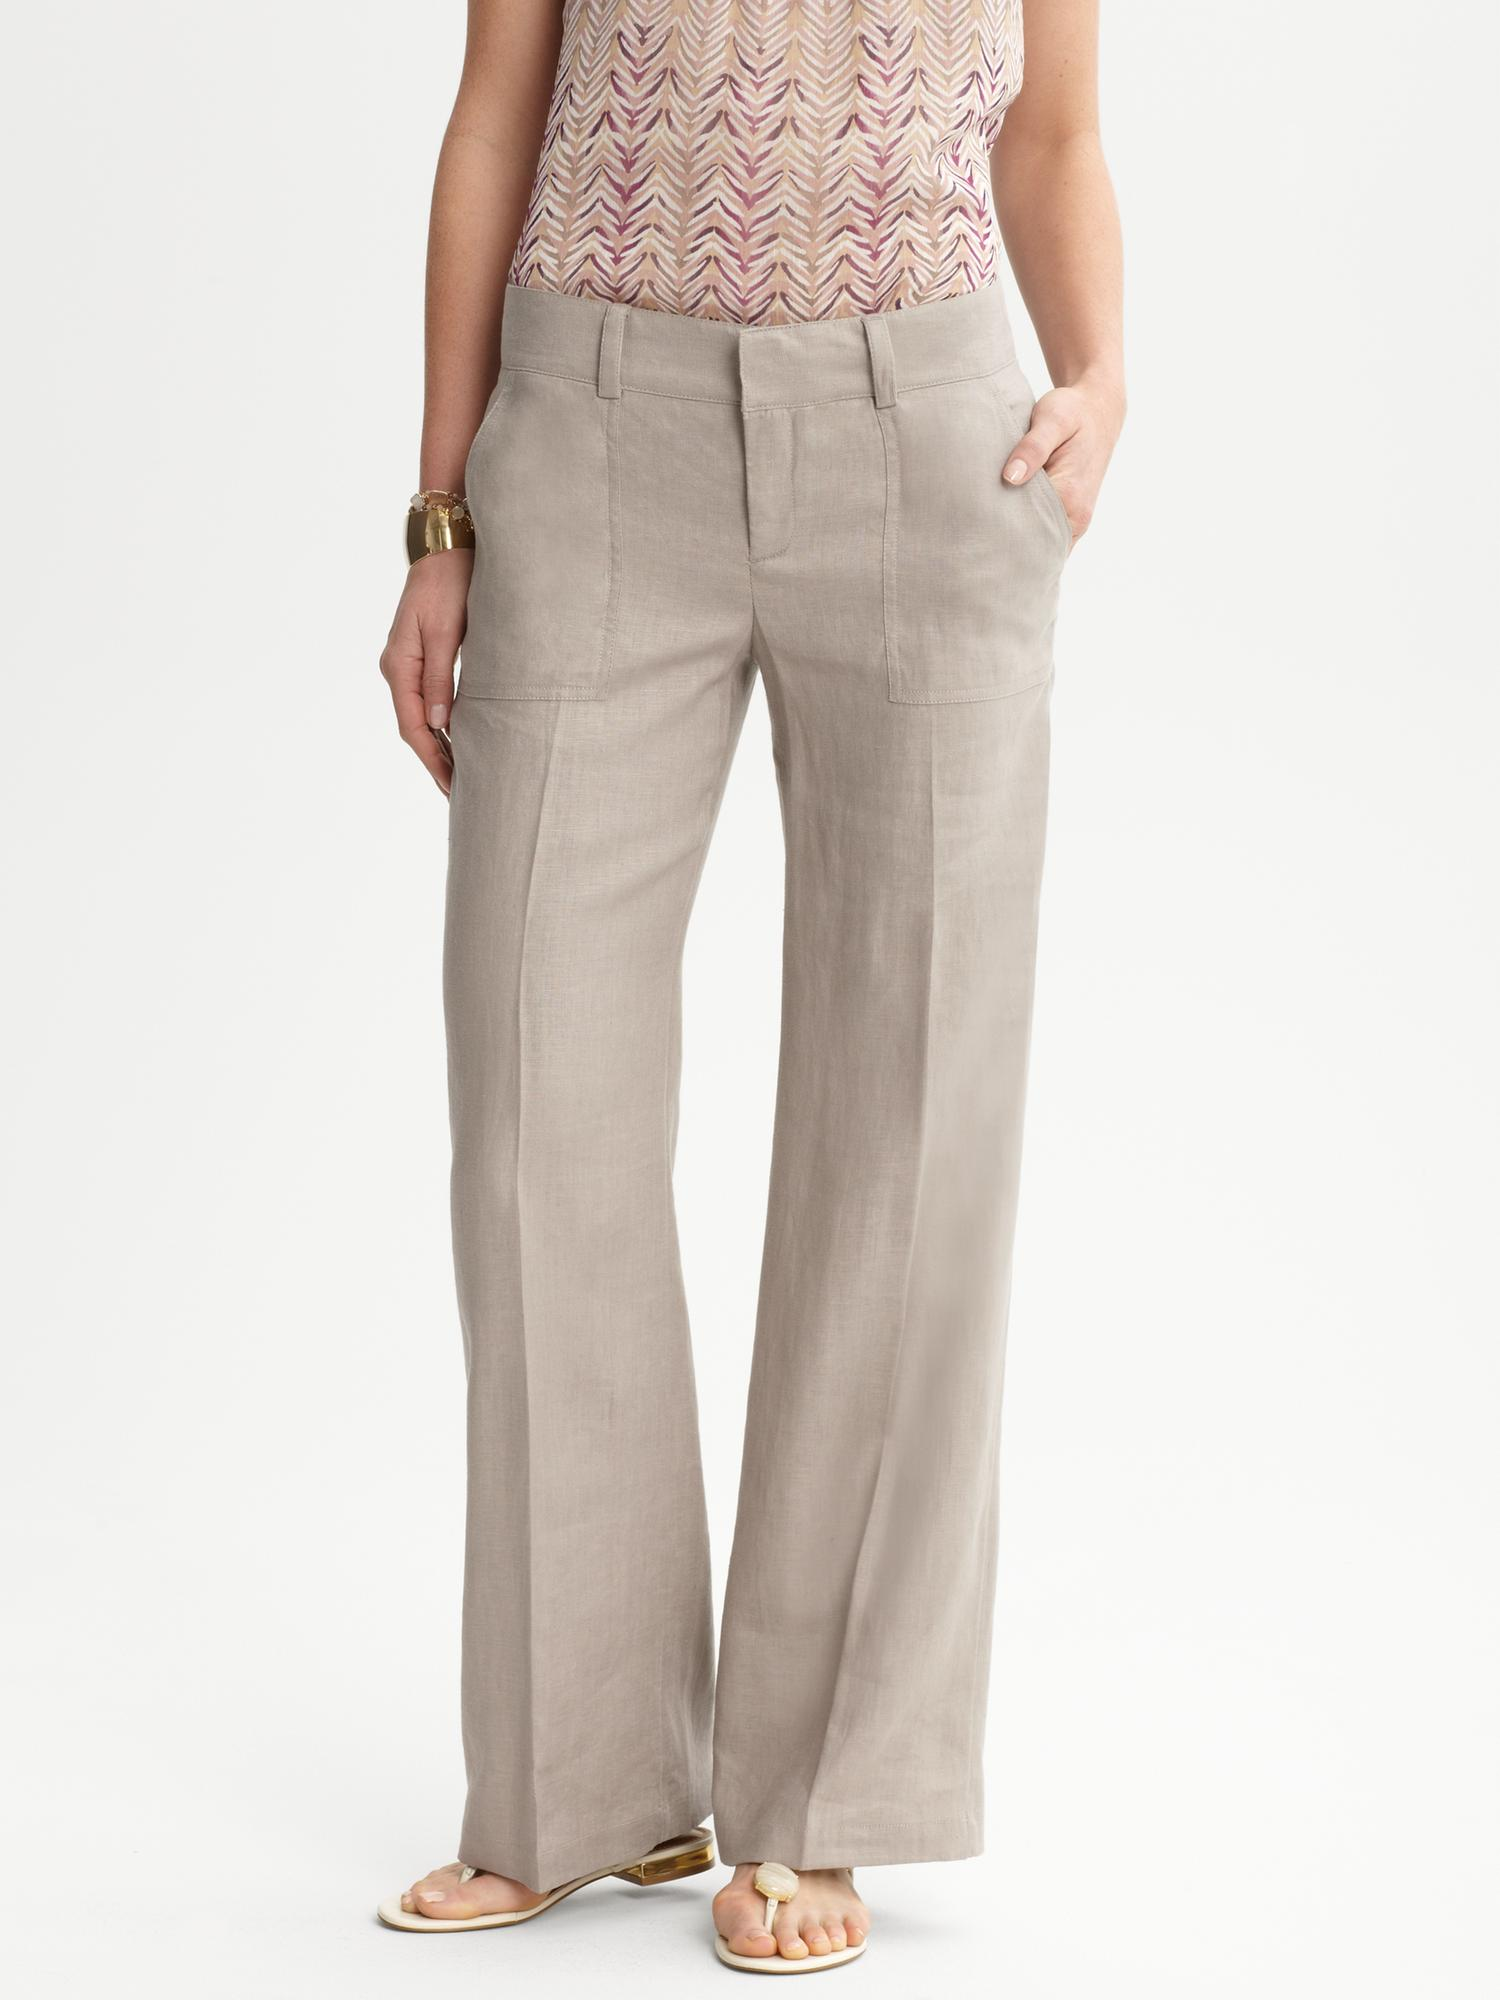 Choose from a bright selection of linen trousers, linen suit trousers, linen pants, wide-leg pants and more. Skip Navigation: Skip to: Top Navigation, Shopping Bag, Main Content, Footer Navigation.